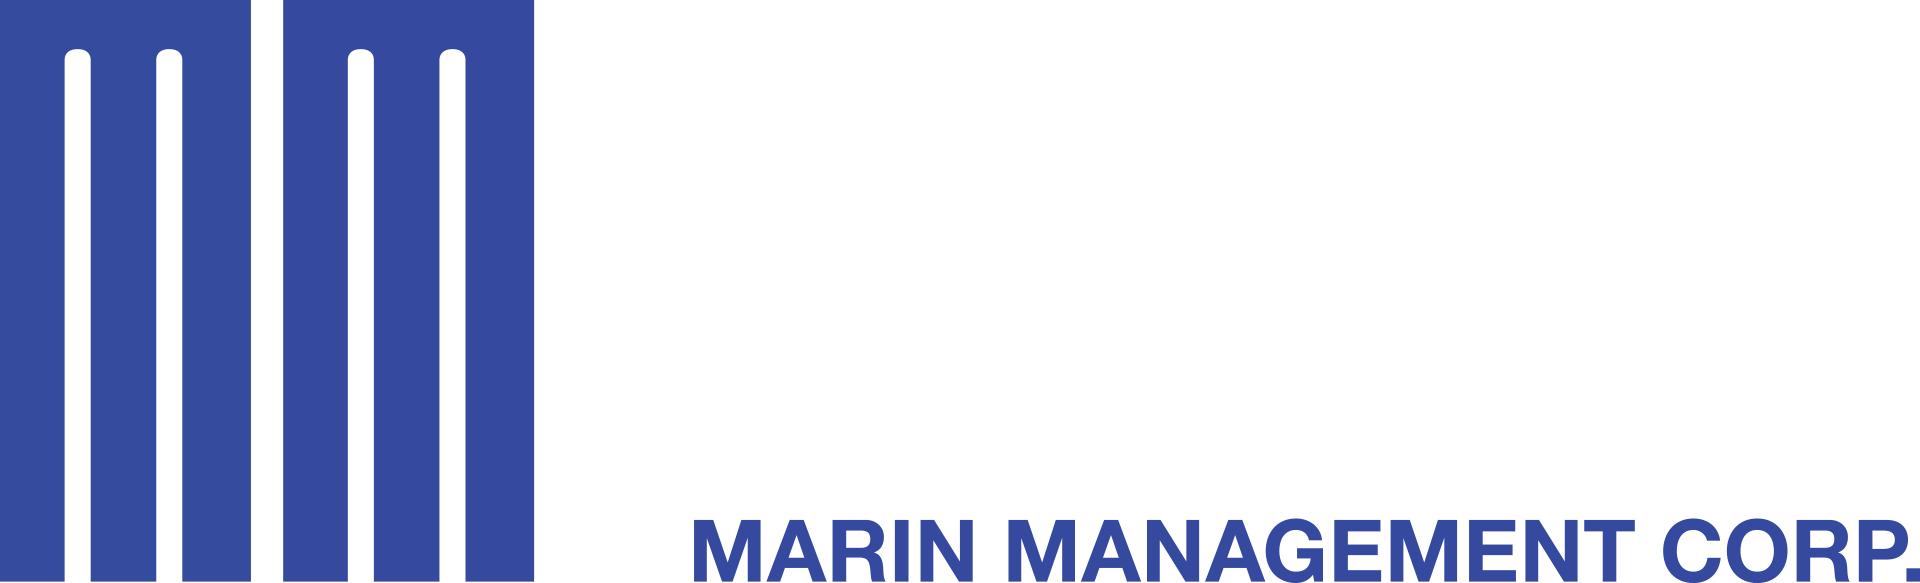 Marin Management Corp.